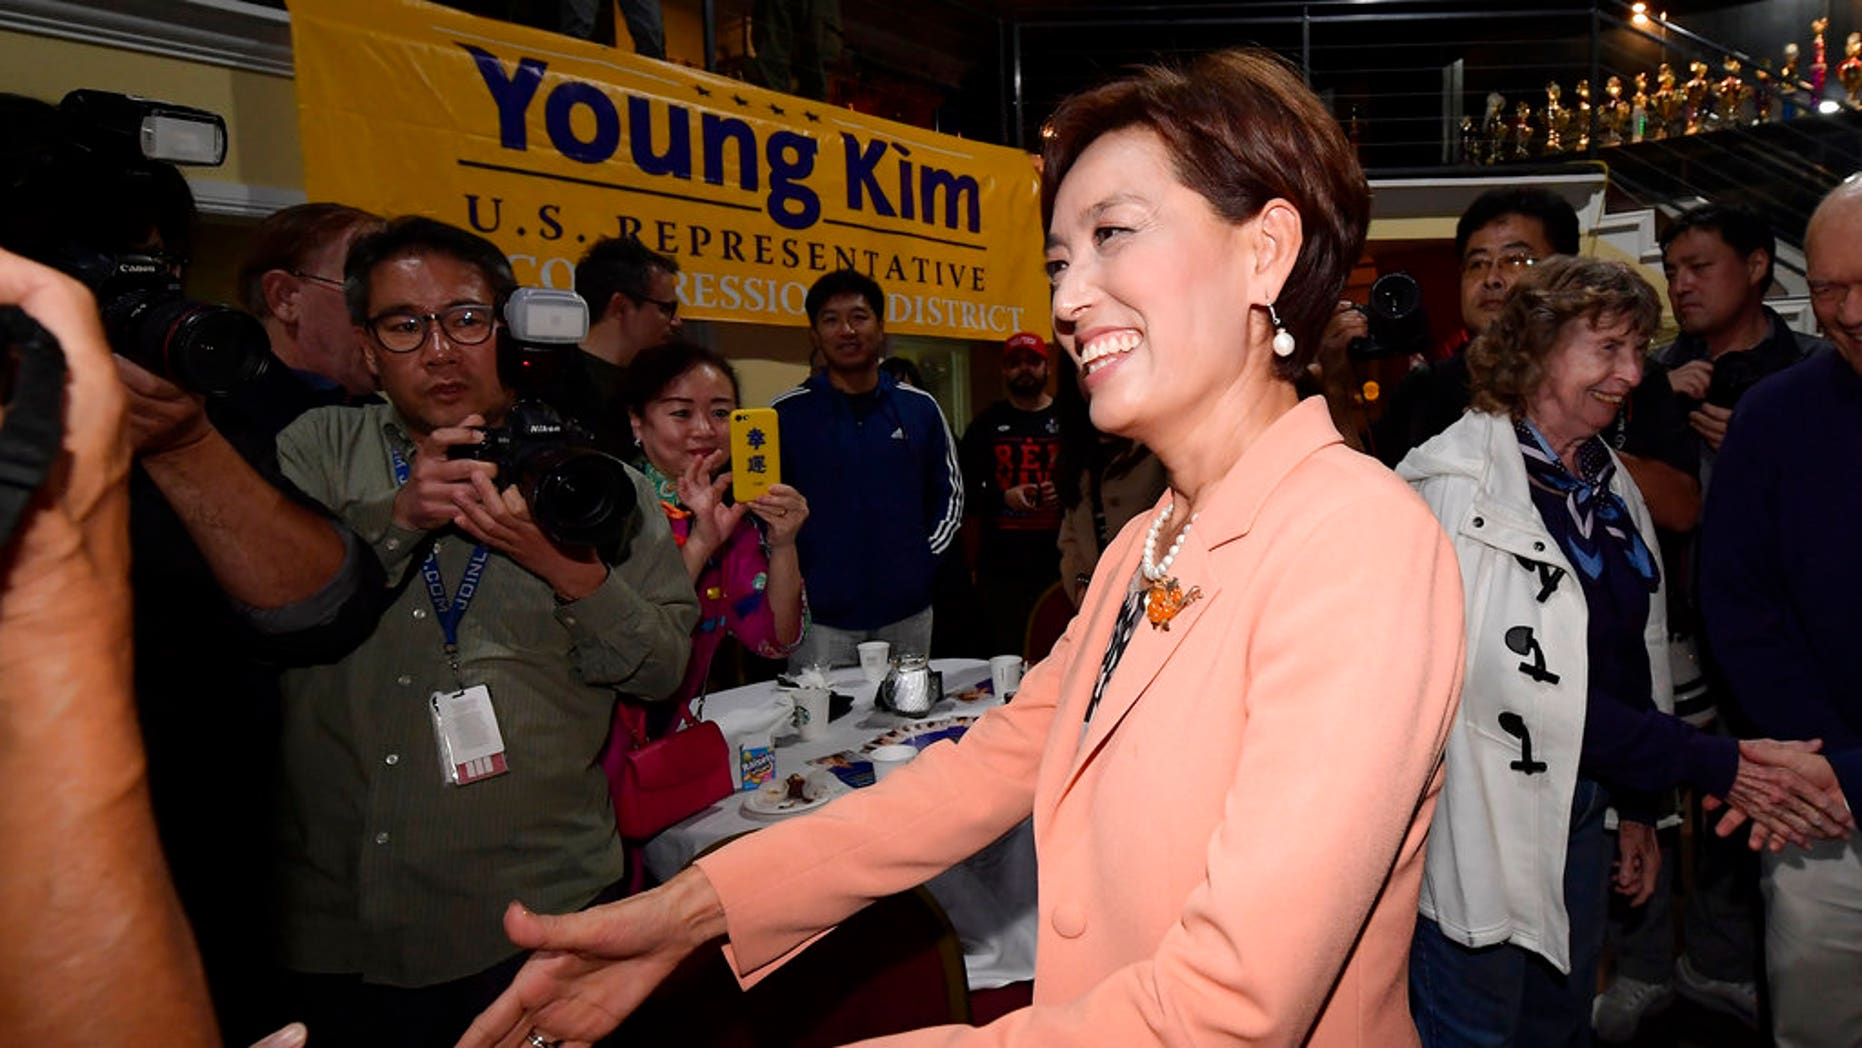 Young Kim, Republican candidate for the 39th Congressional District in California, greets supporters.